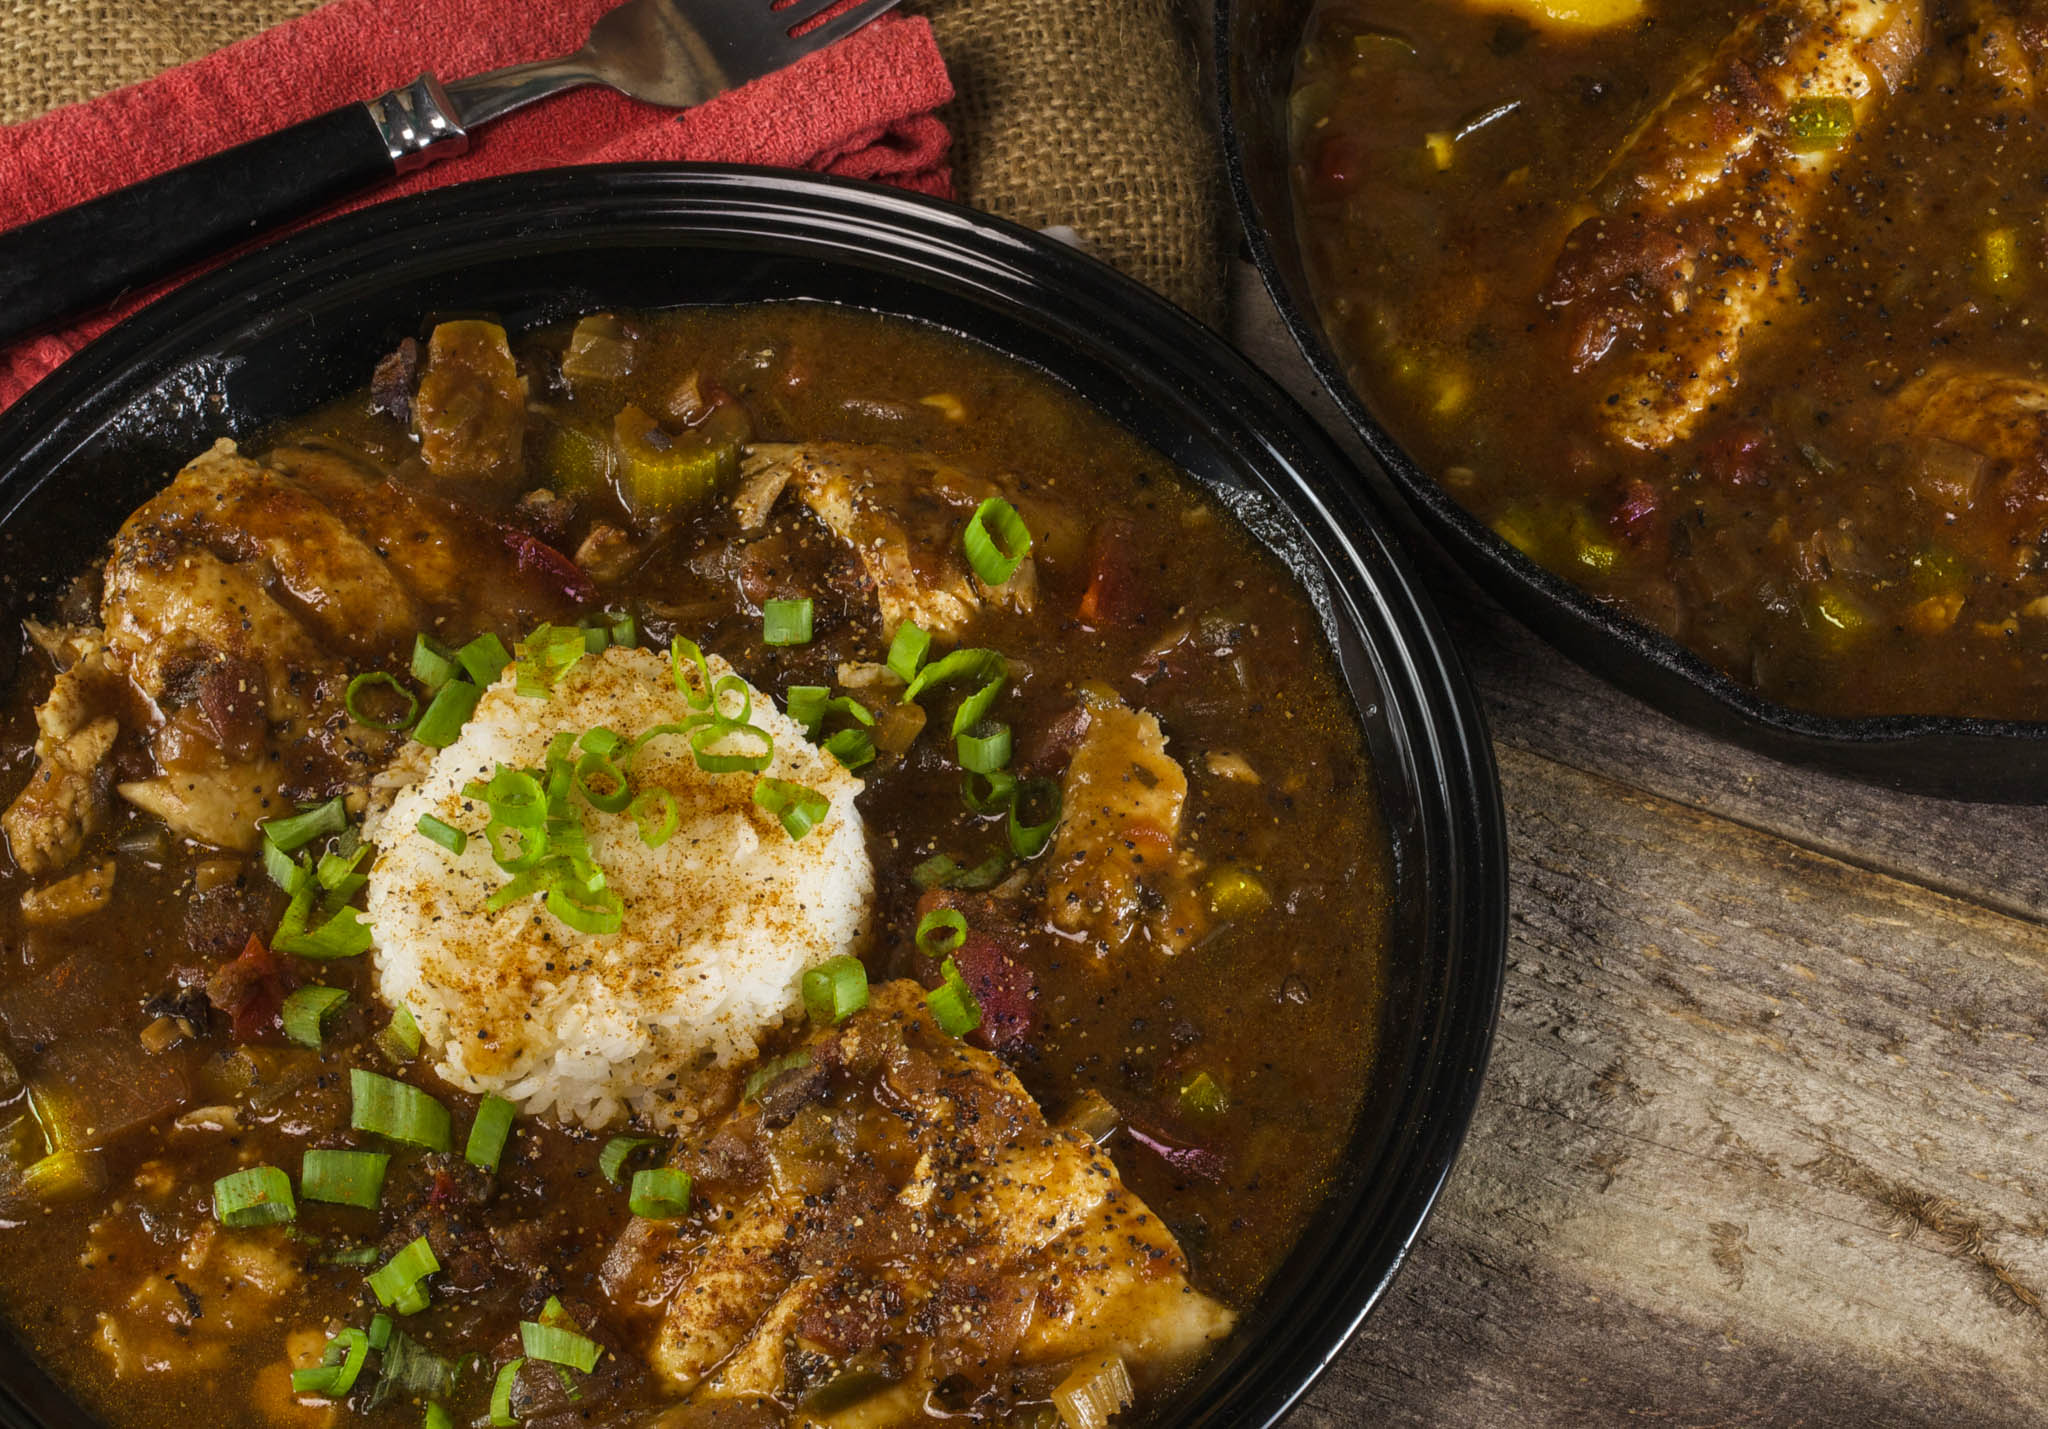 Catfish Courtbouillon Is A Spicy Cajun Stew Like Dish Similar To Gumbo